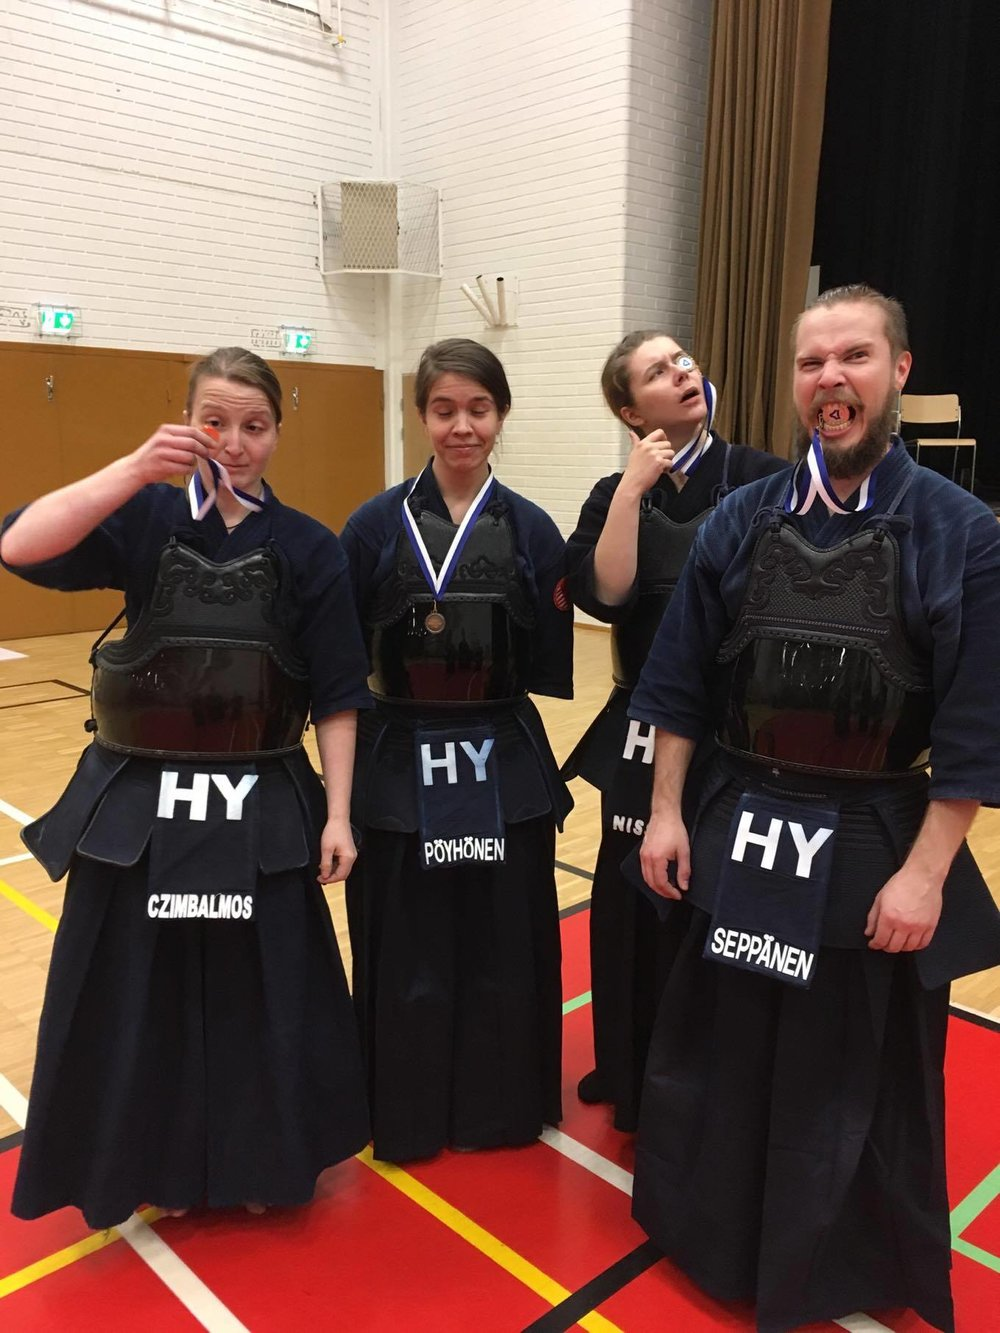 The saturday medalists taking their achievements very seriously. (From left to right: Merci, Saara, Jenni and Otto)